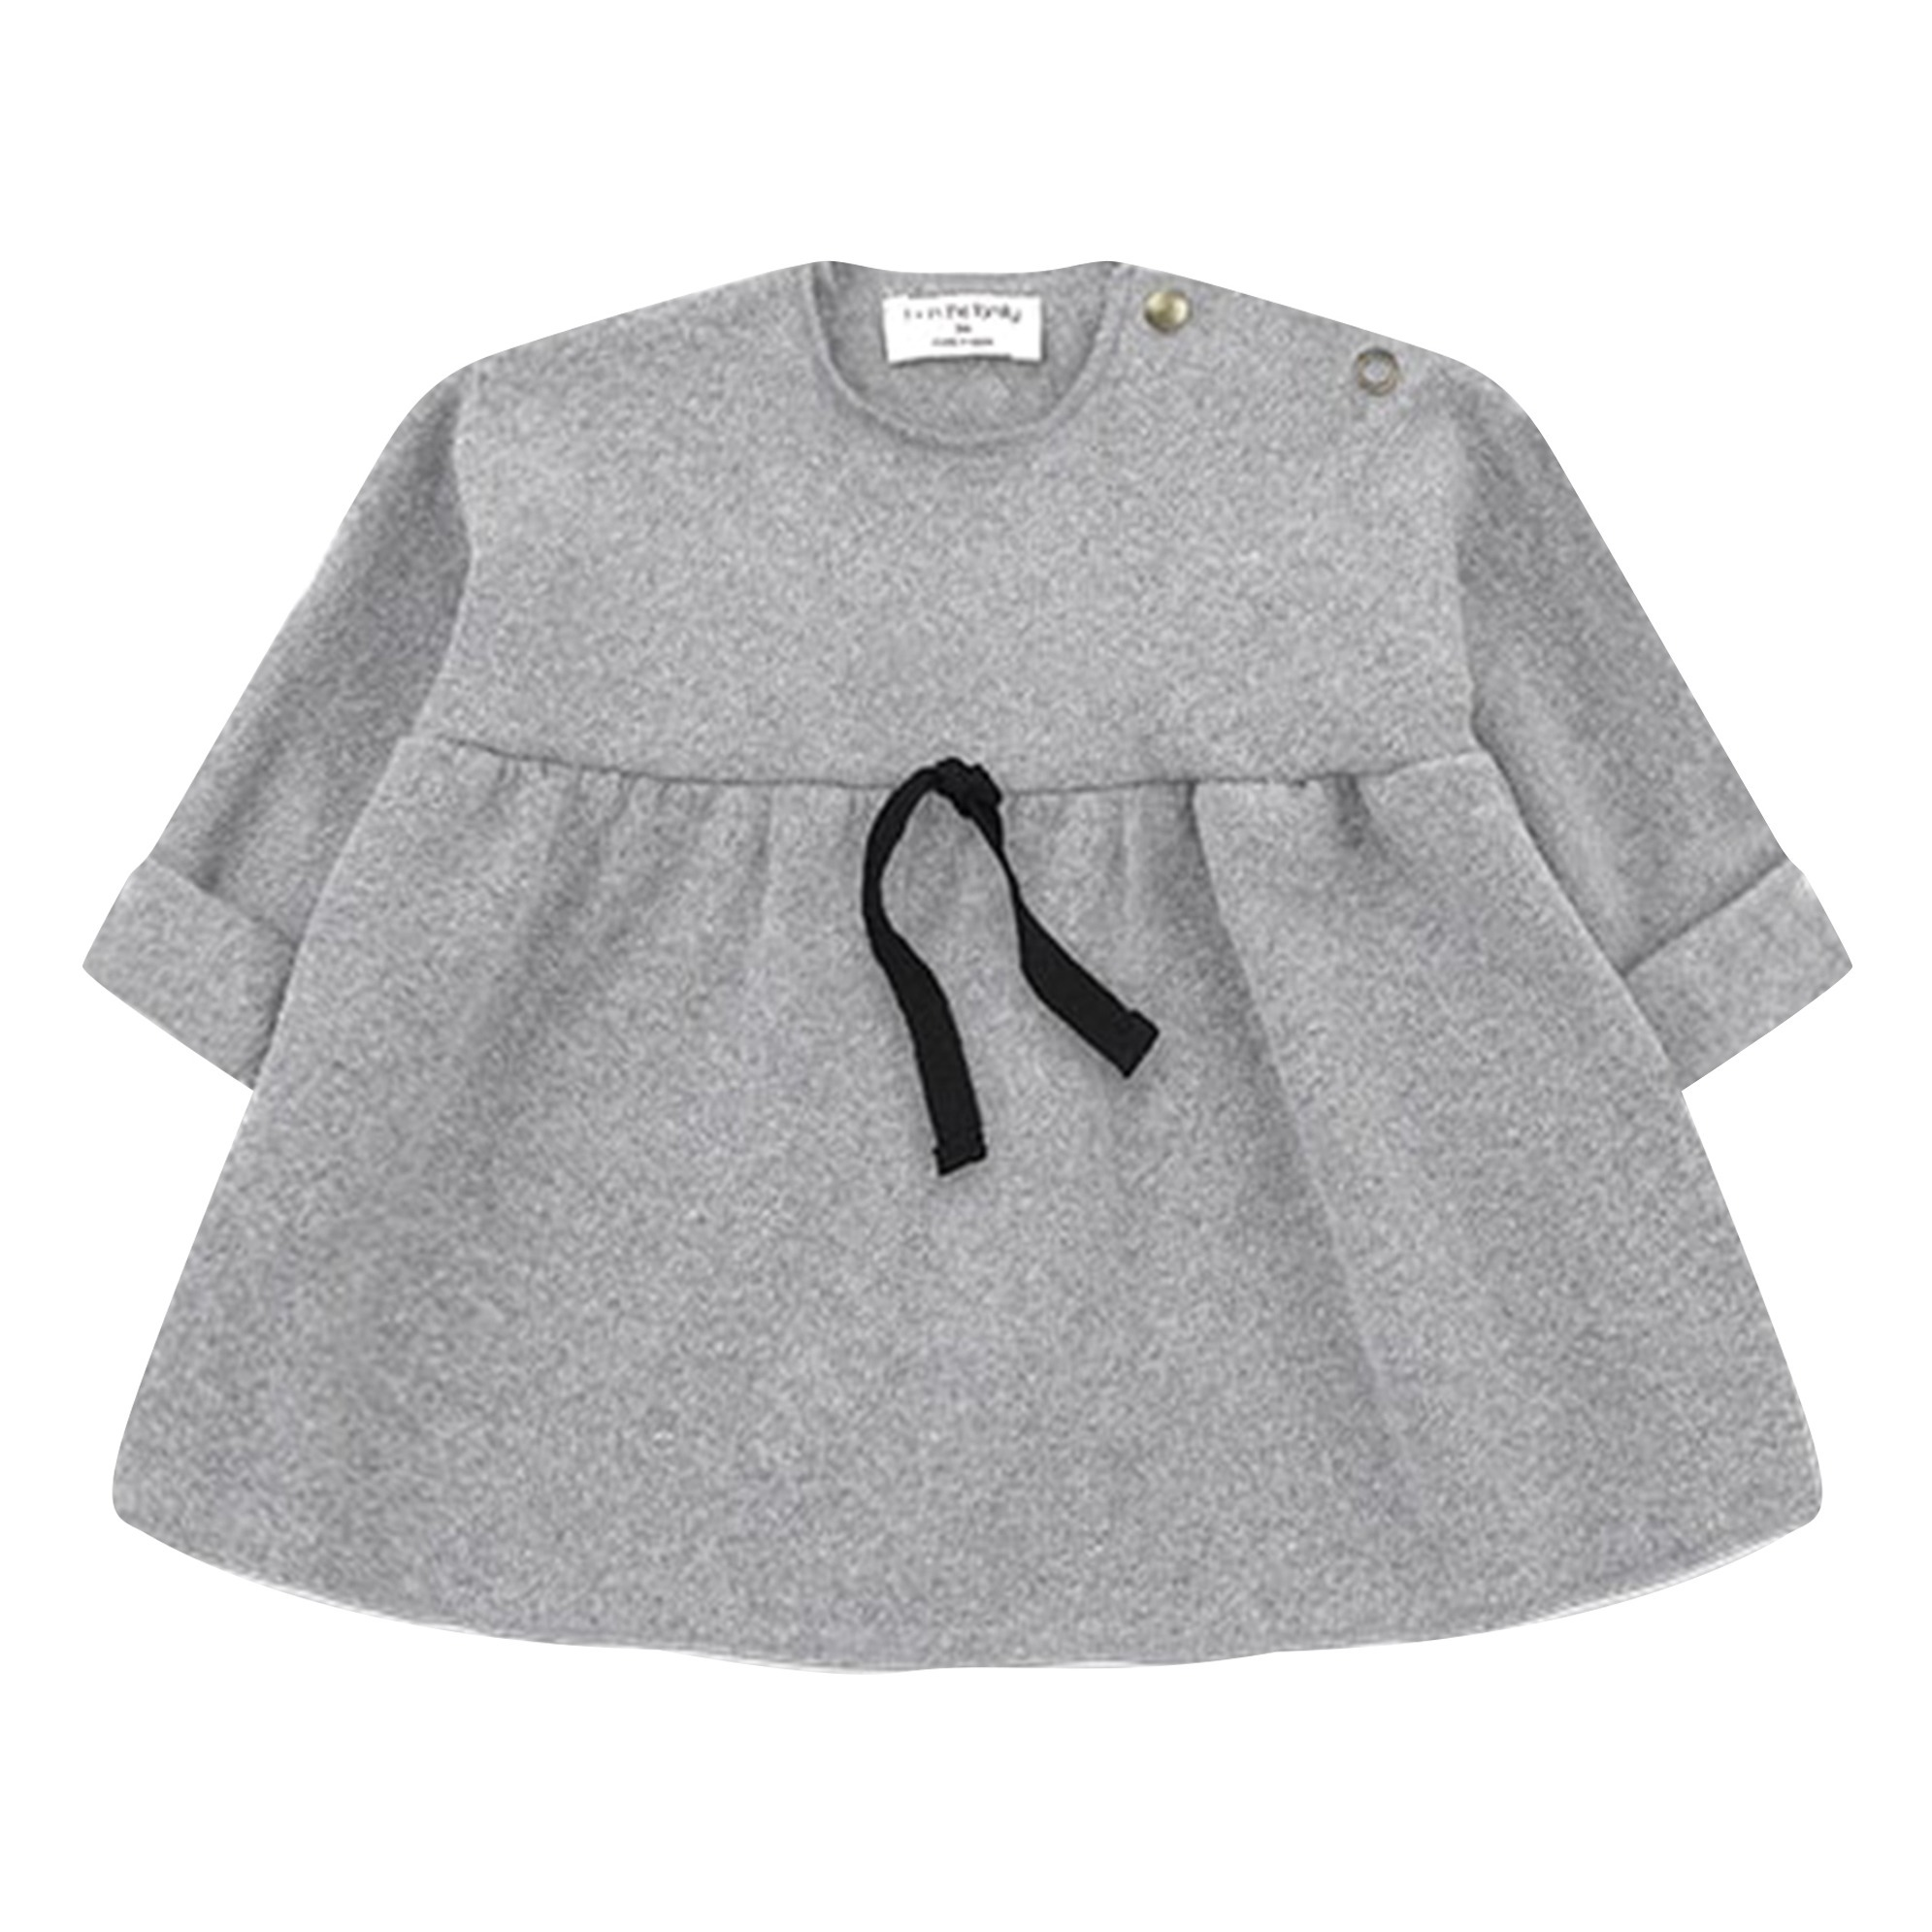 Designer Baby Clothes ⋅ Baby Clothing ⋅ Smallable